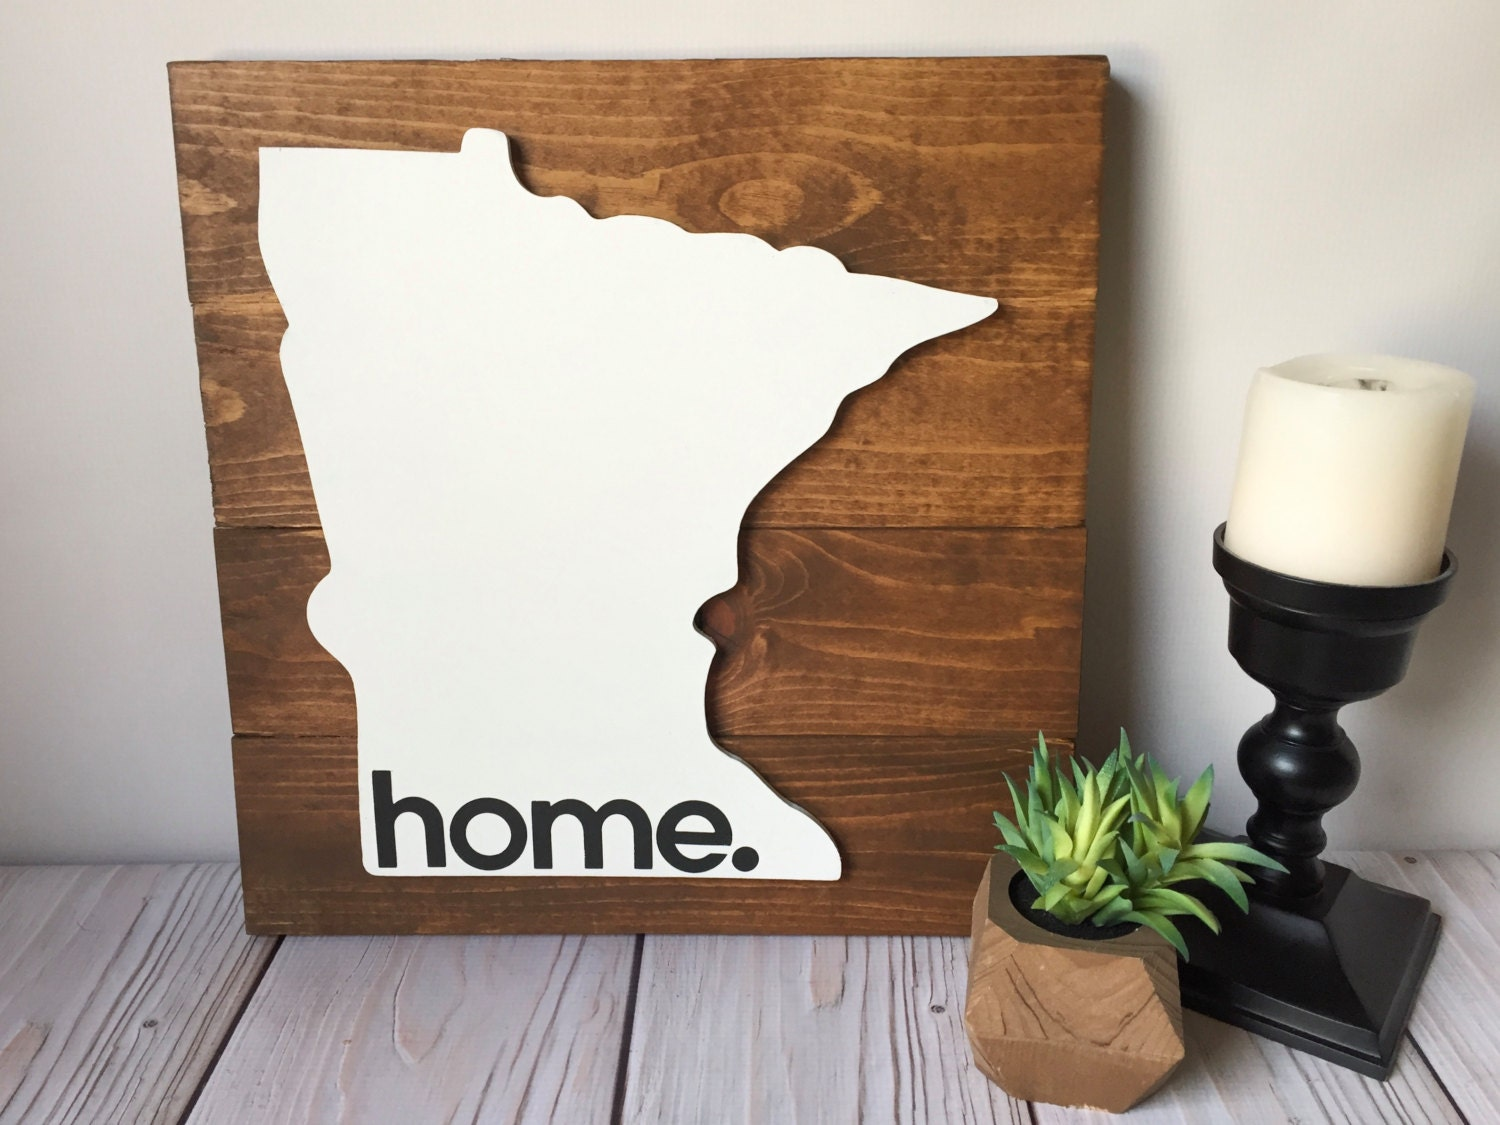 Rustic Photo Wall Decor : Rustic home sign wall decor minnesota art